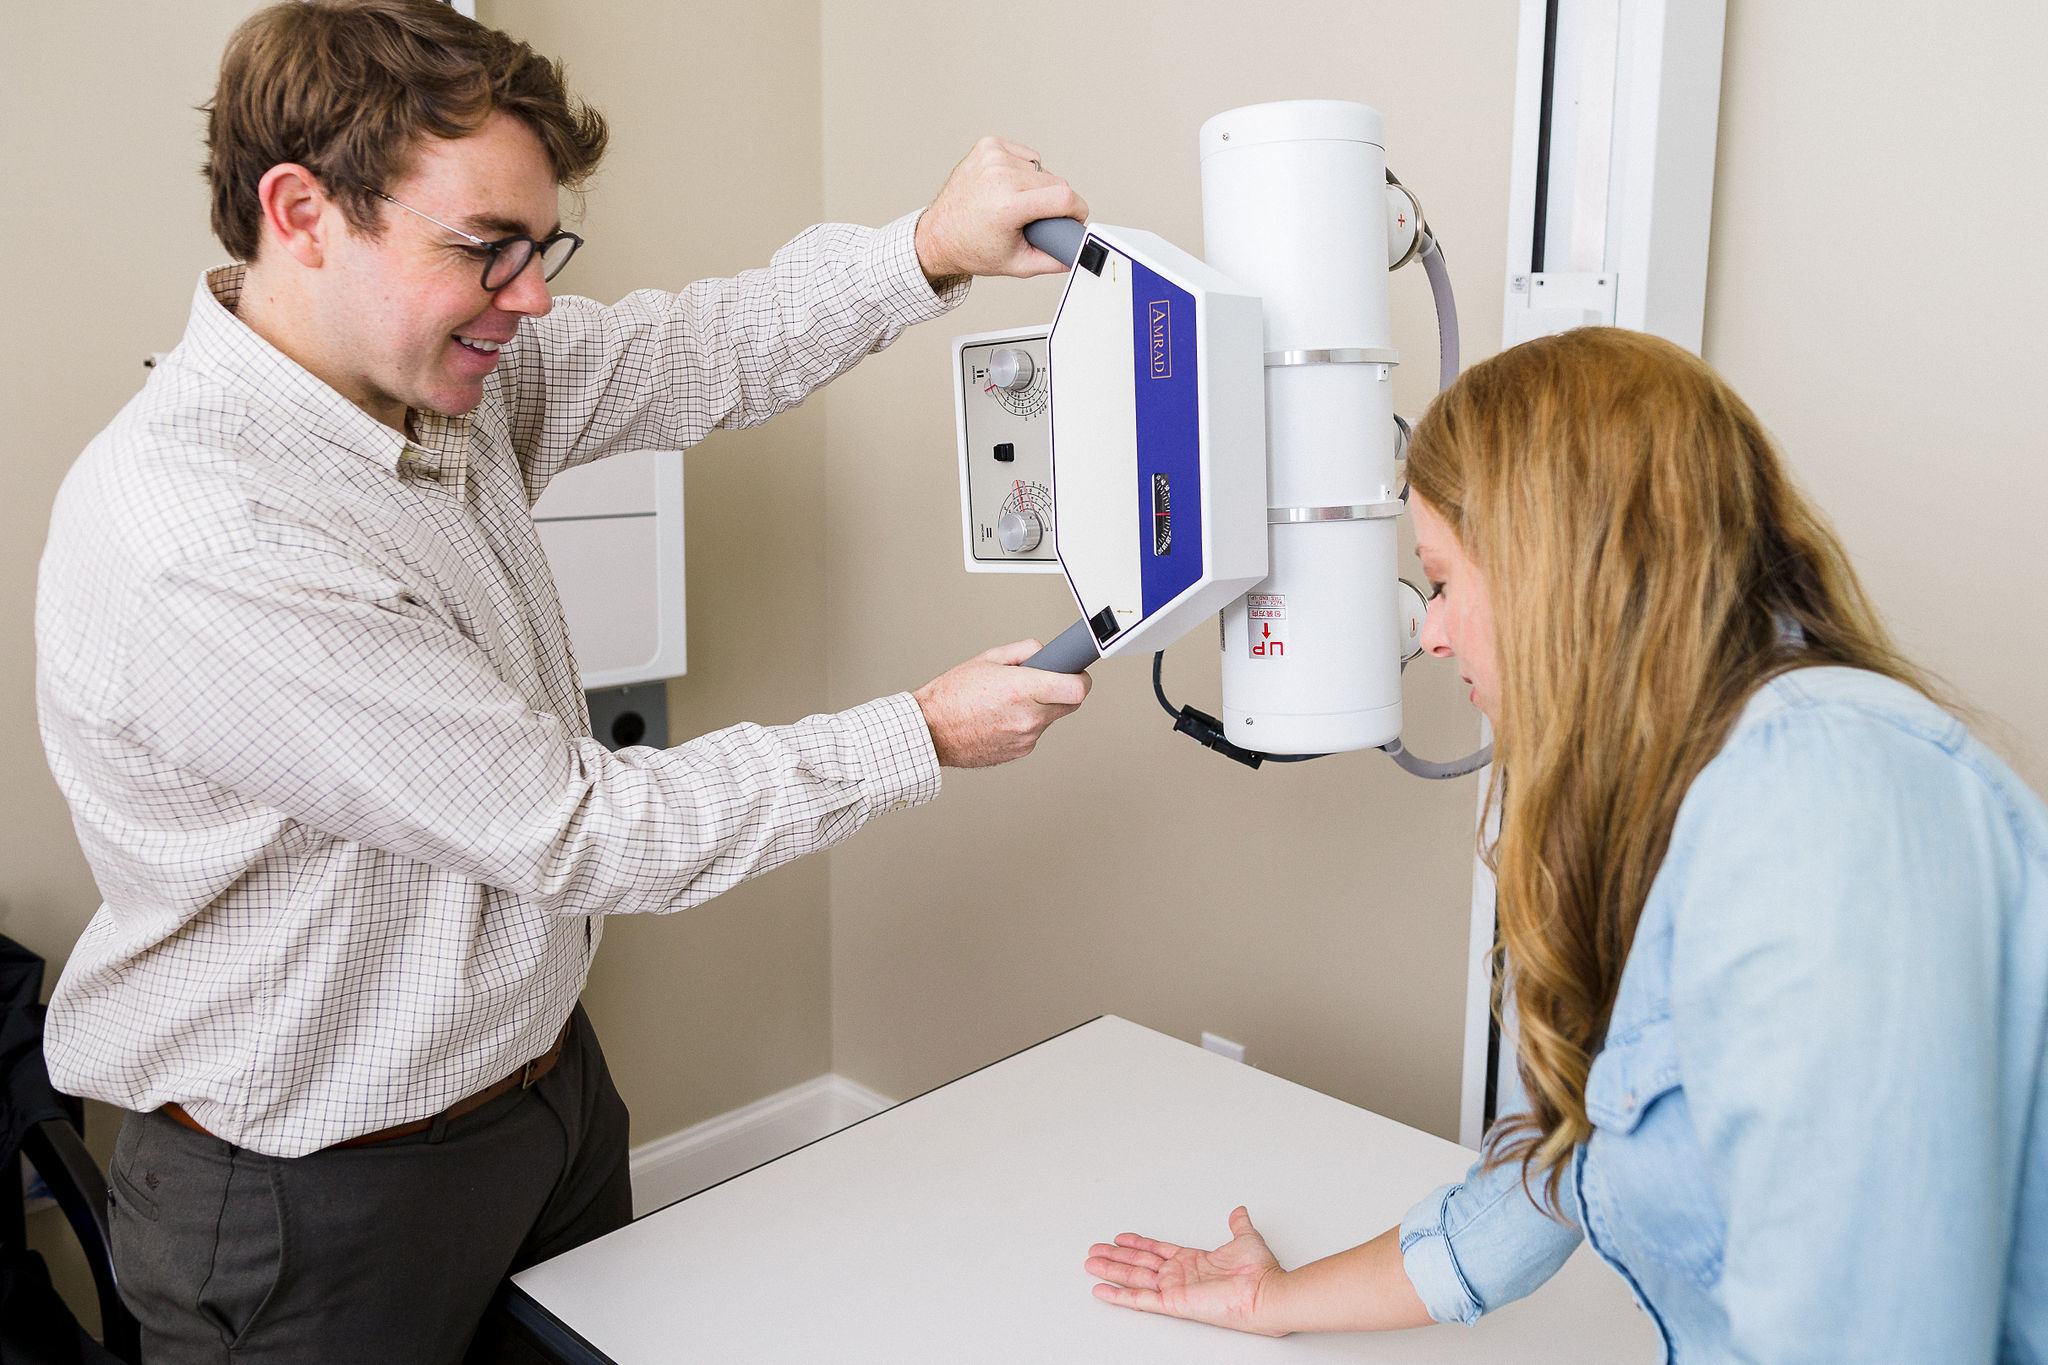 Our Nashville Walk-In Clinic Offers Onsite Digital X-Ray